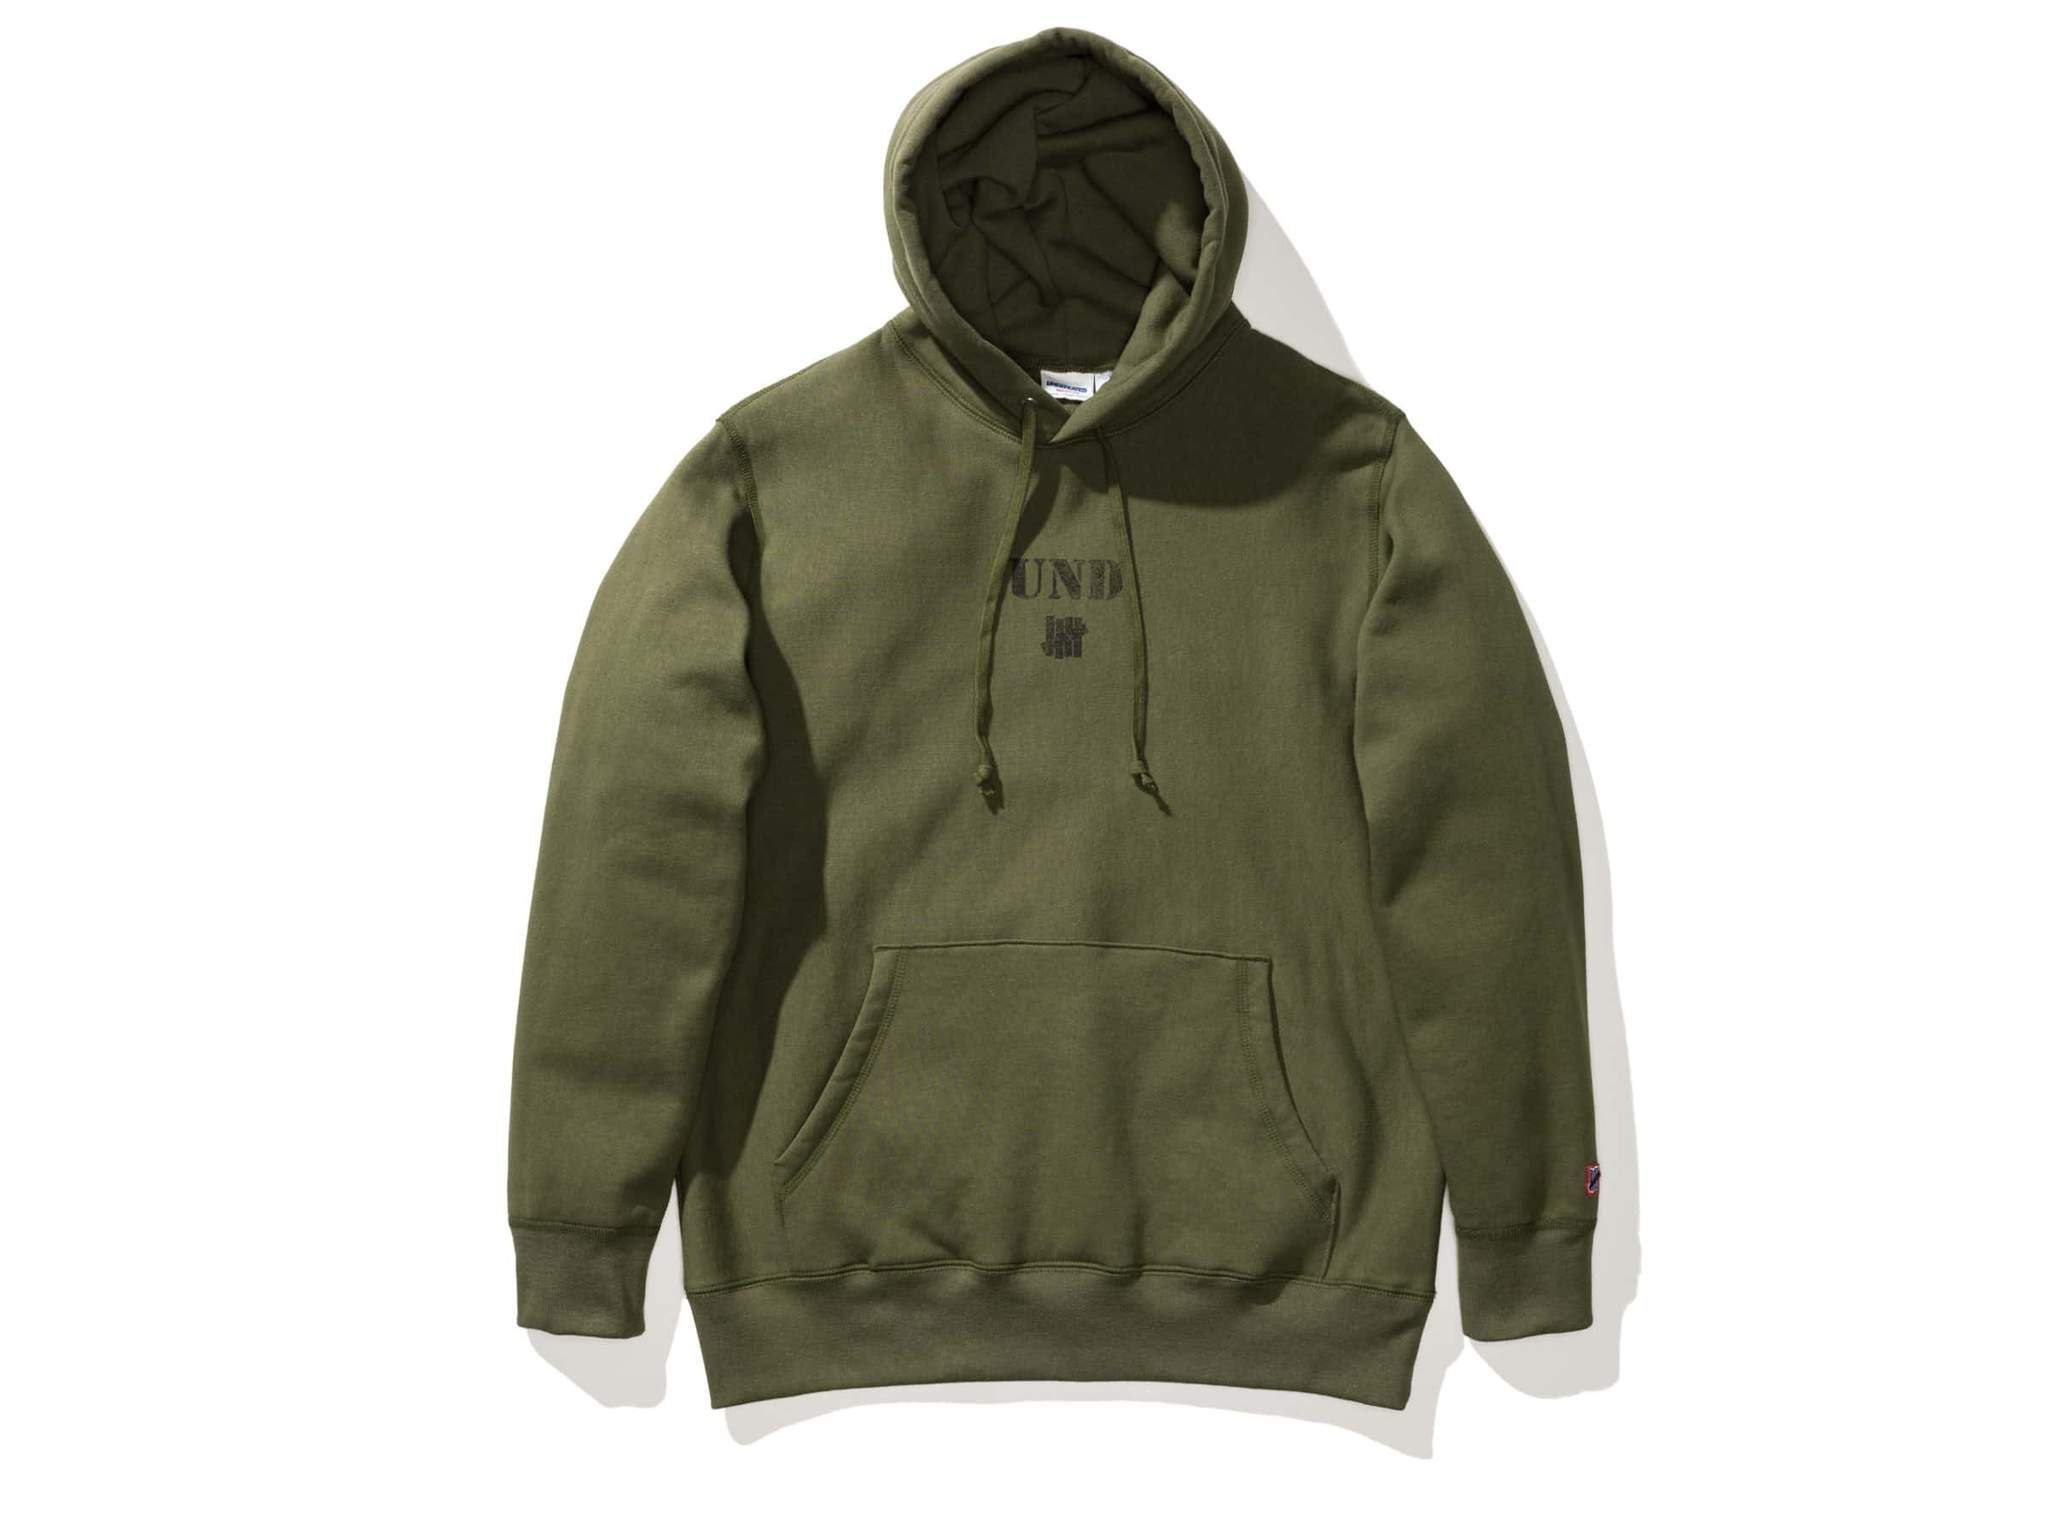 3e0baeae Und icon pullover hoodie | Clothes | Hoodies, Clothes, Sweaters